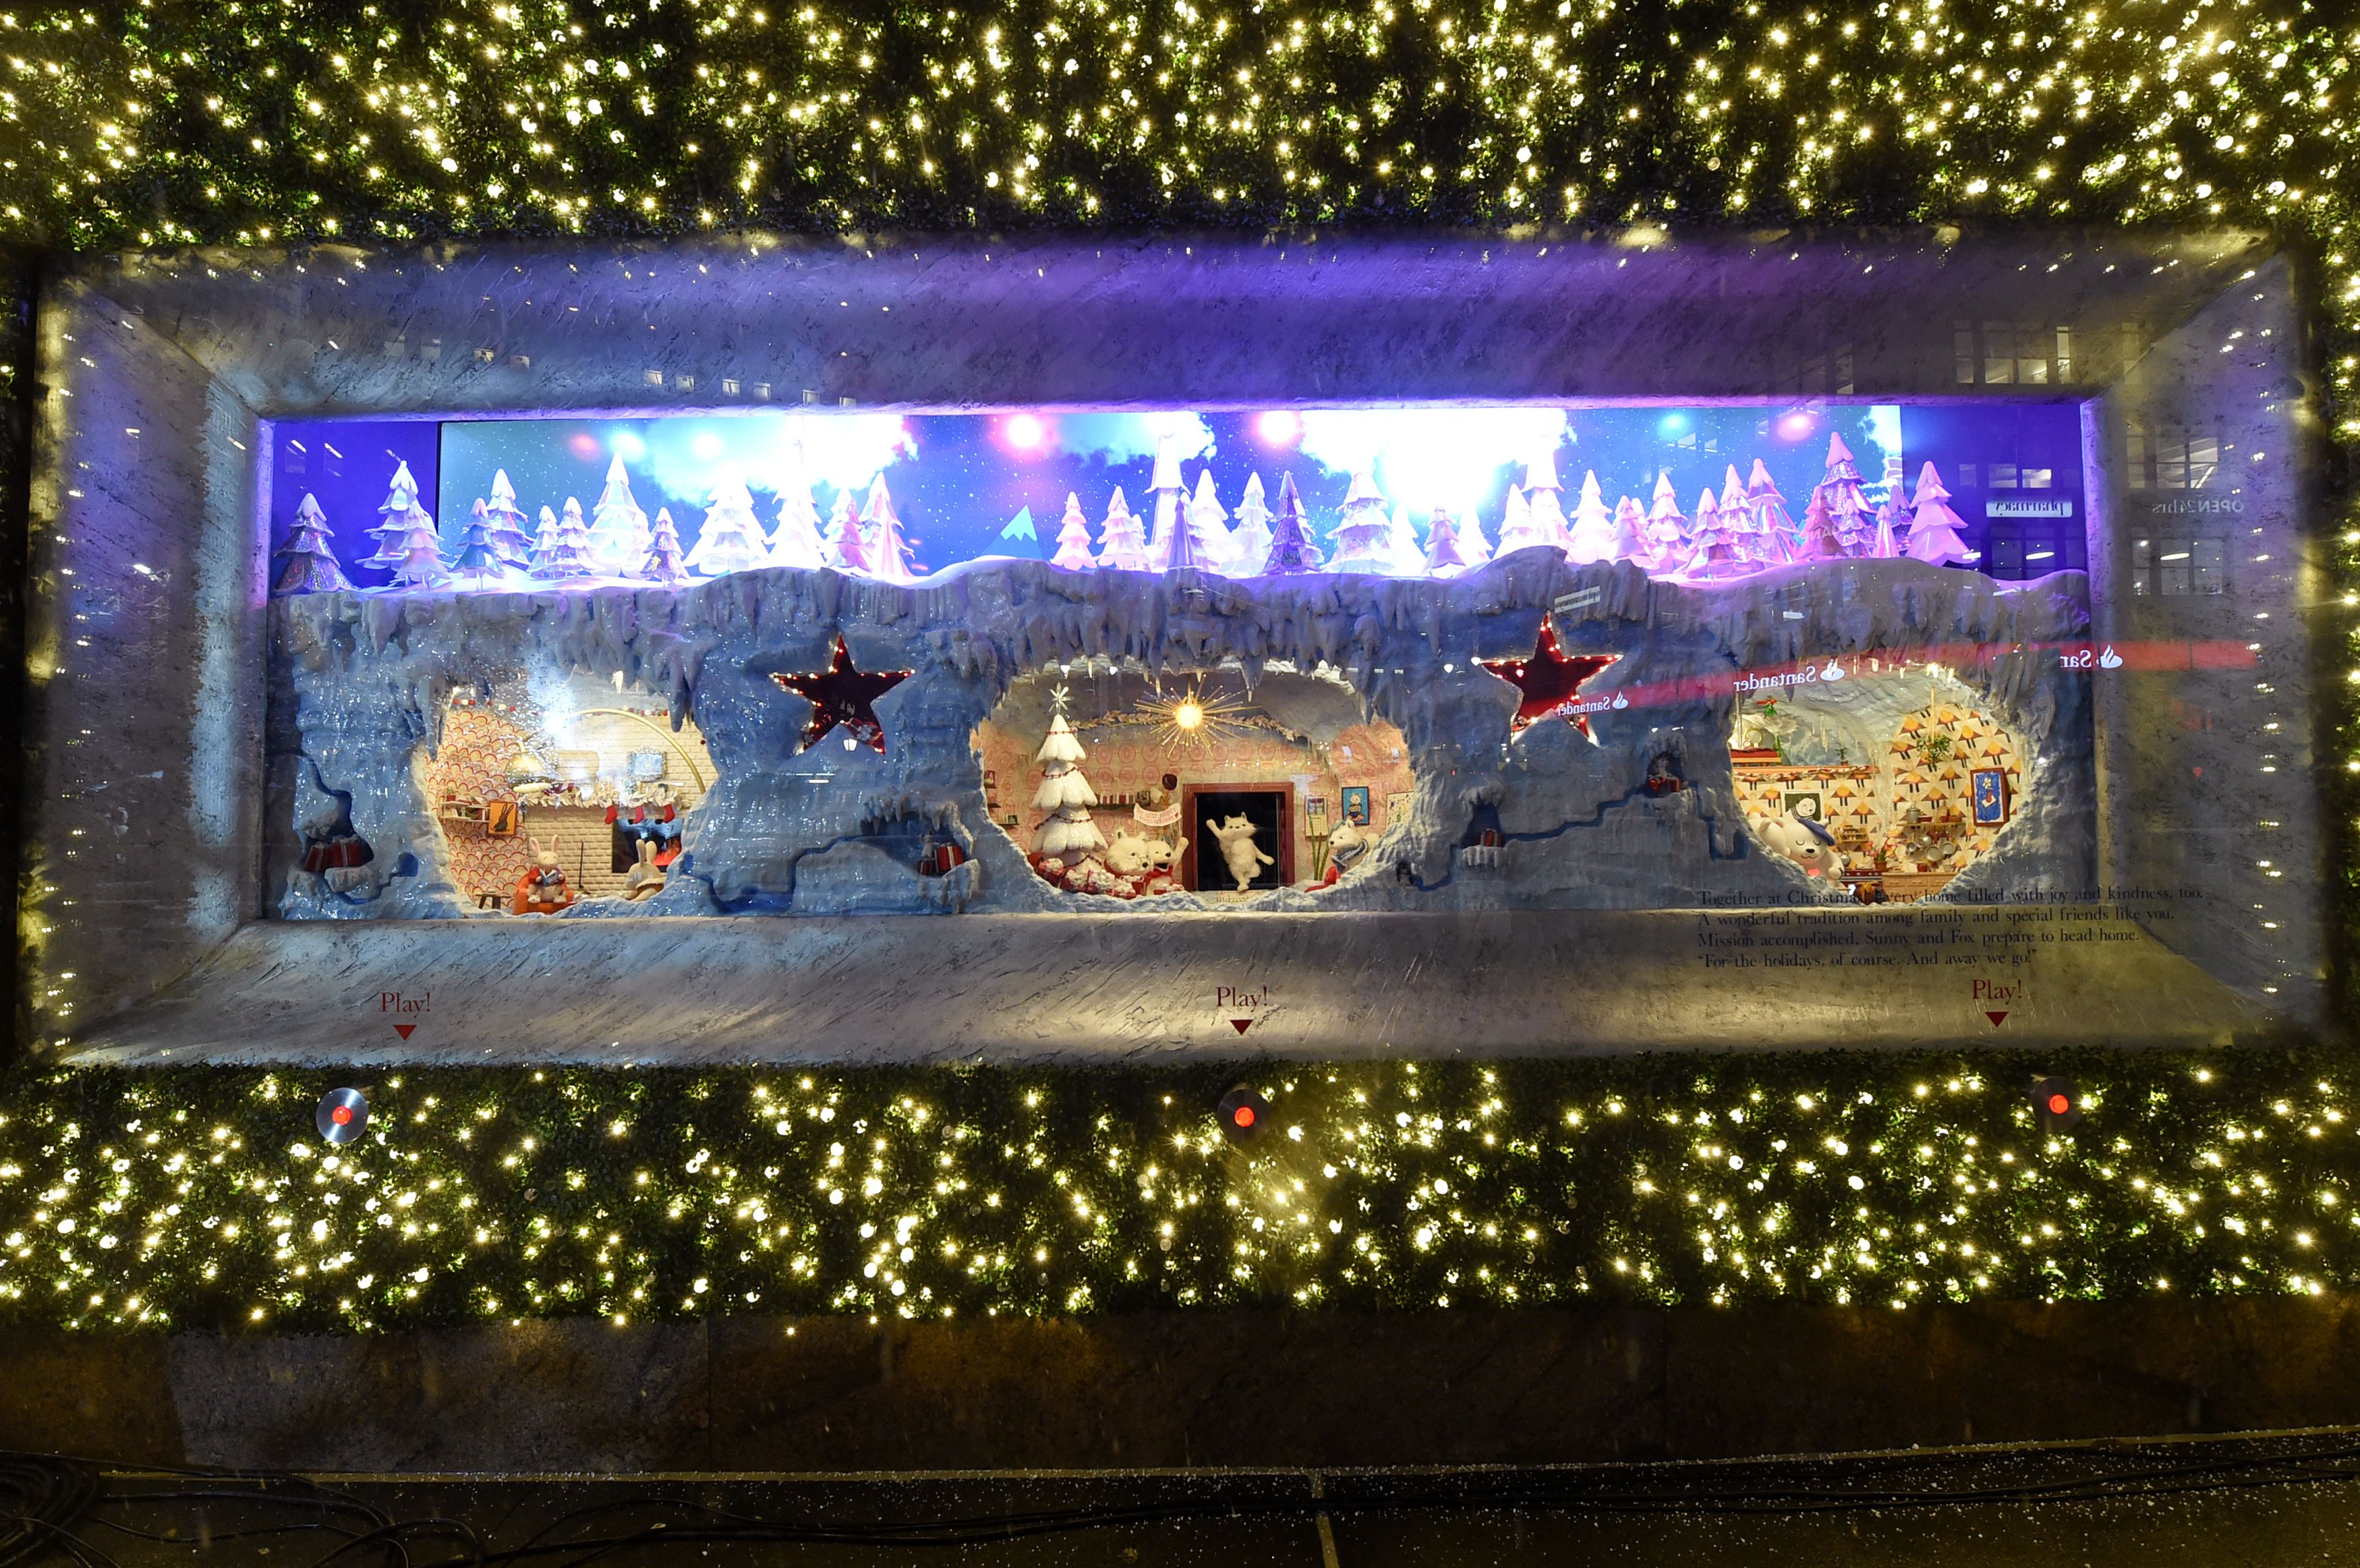 The Best Christmas Windows in NYC - Holiday Window Displays to Visit ...